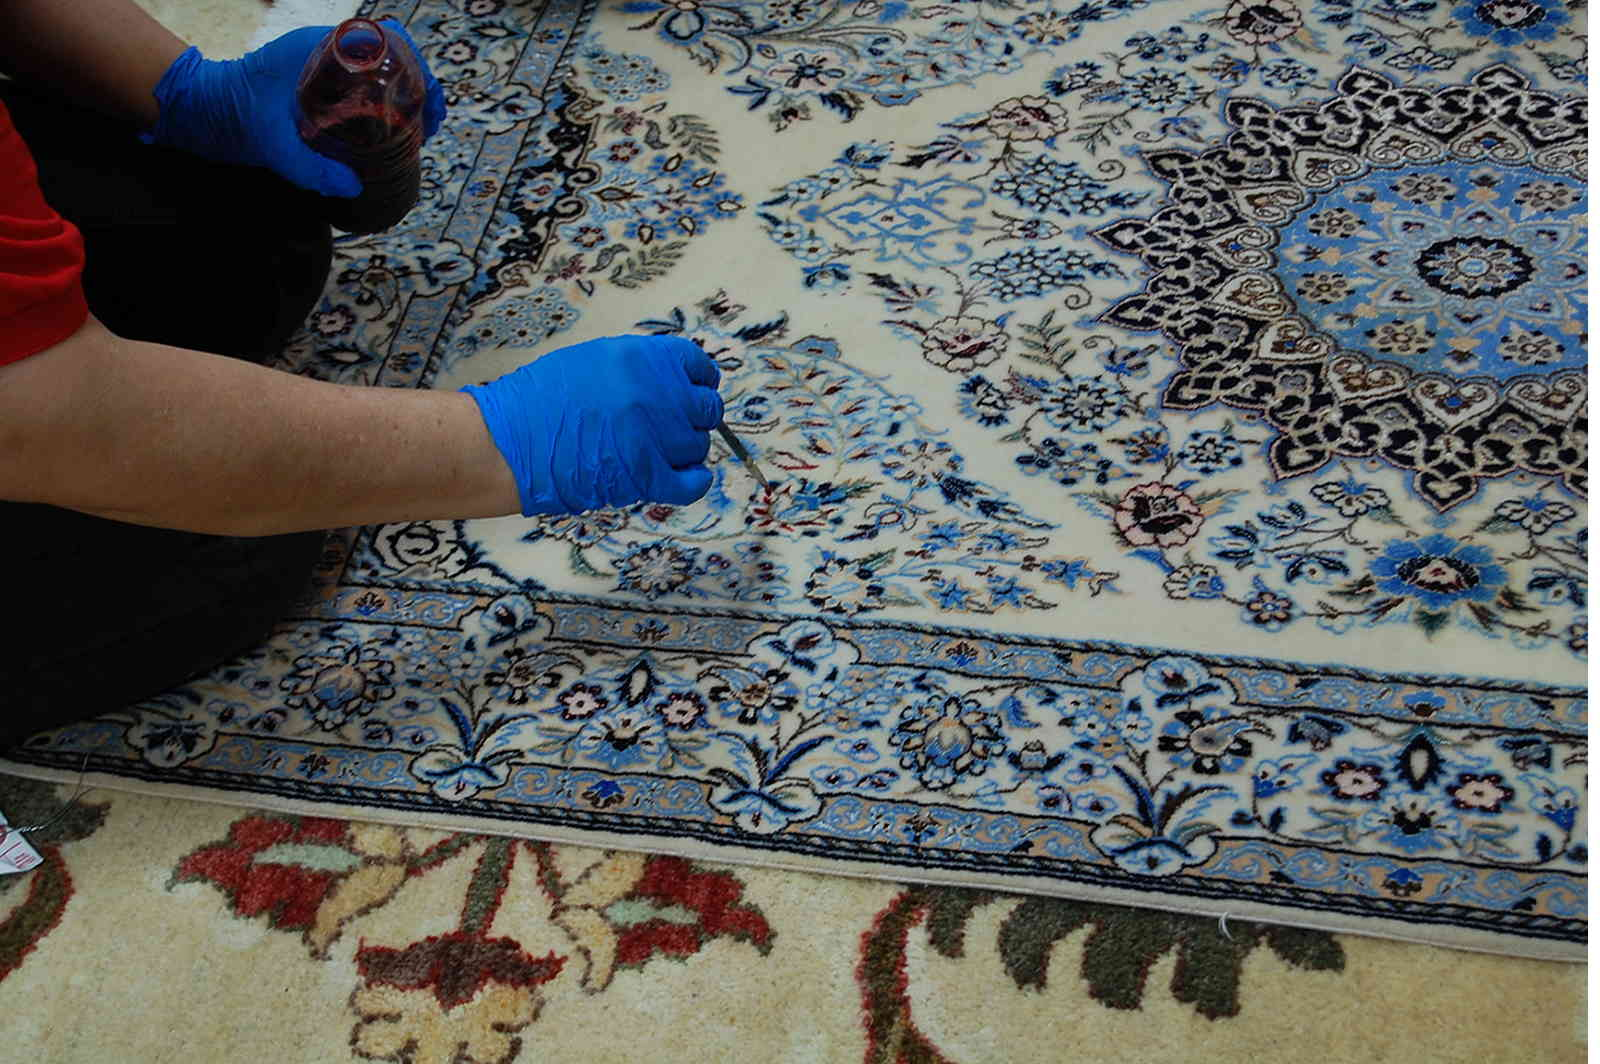 carpet repair and restoration, carpet color restoration, rug repair and restore, rug color restore